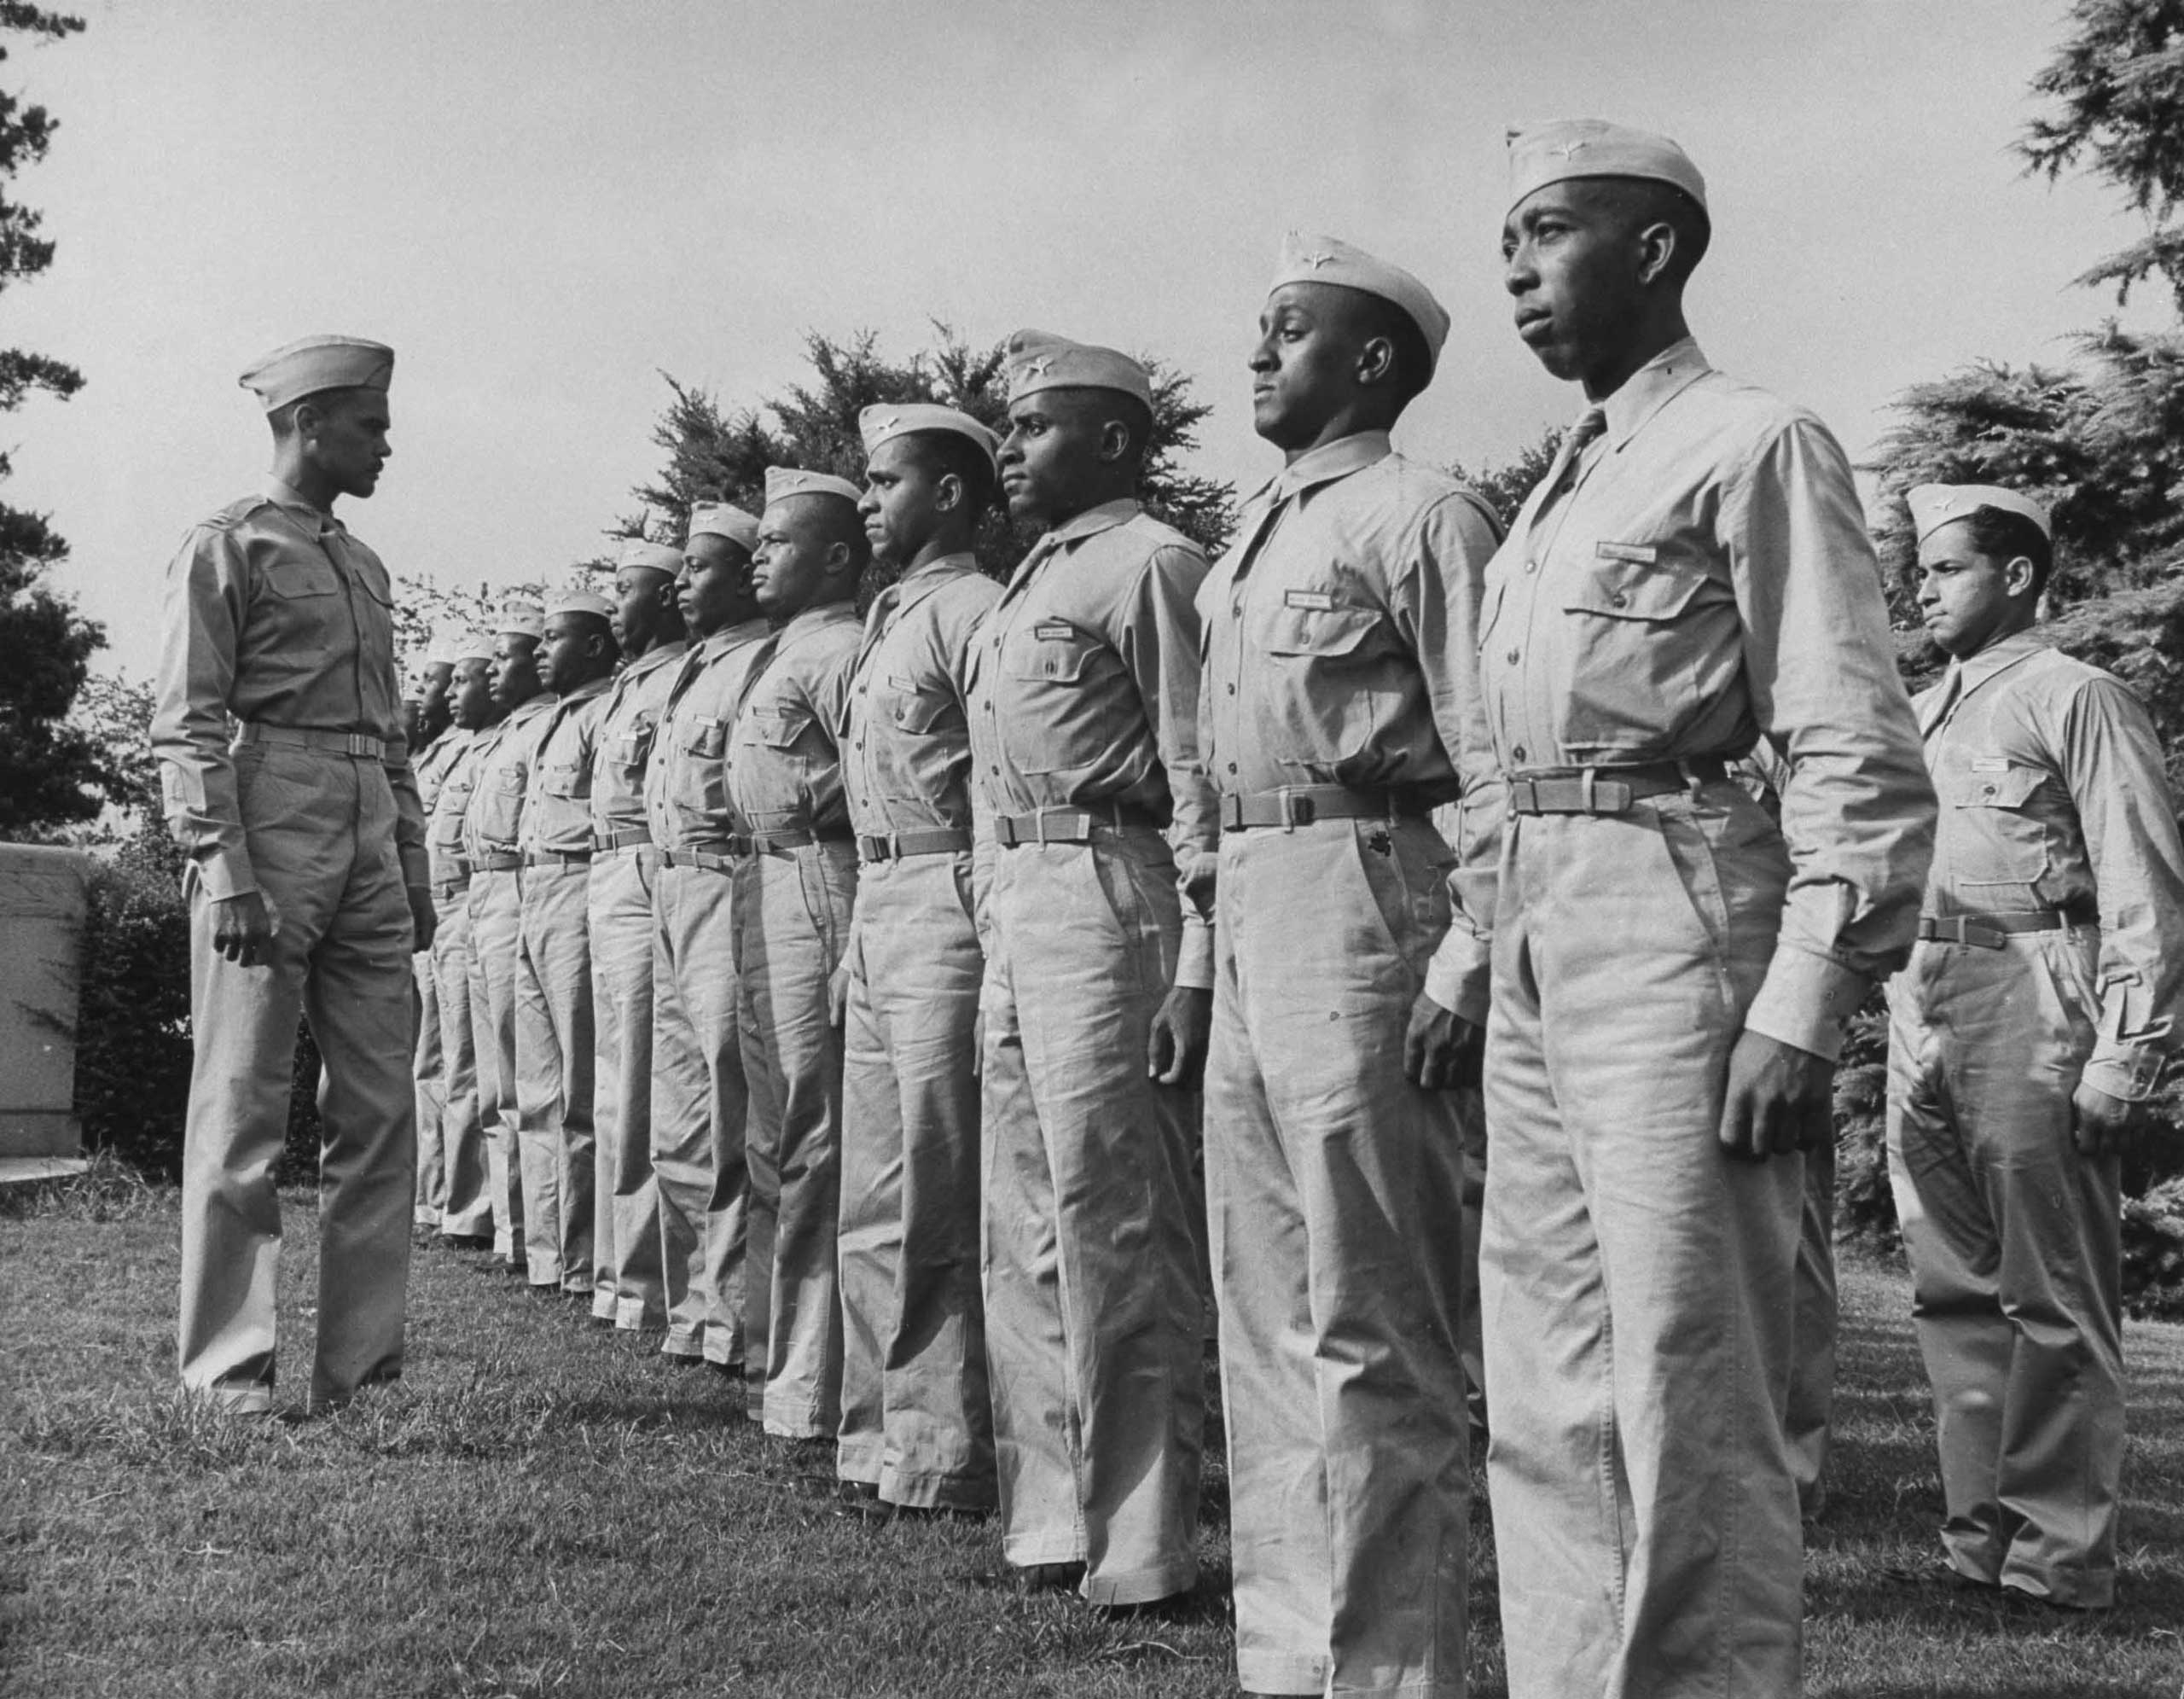 A group of Tuskegee Airmen in Alabama in 1942.